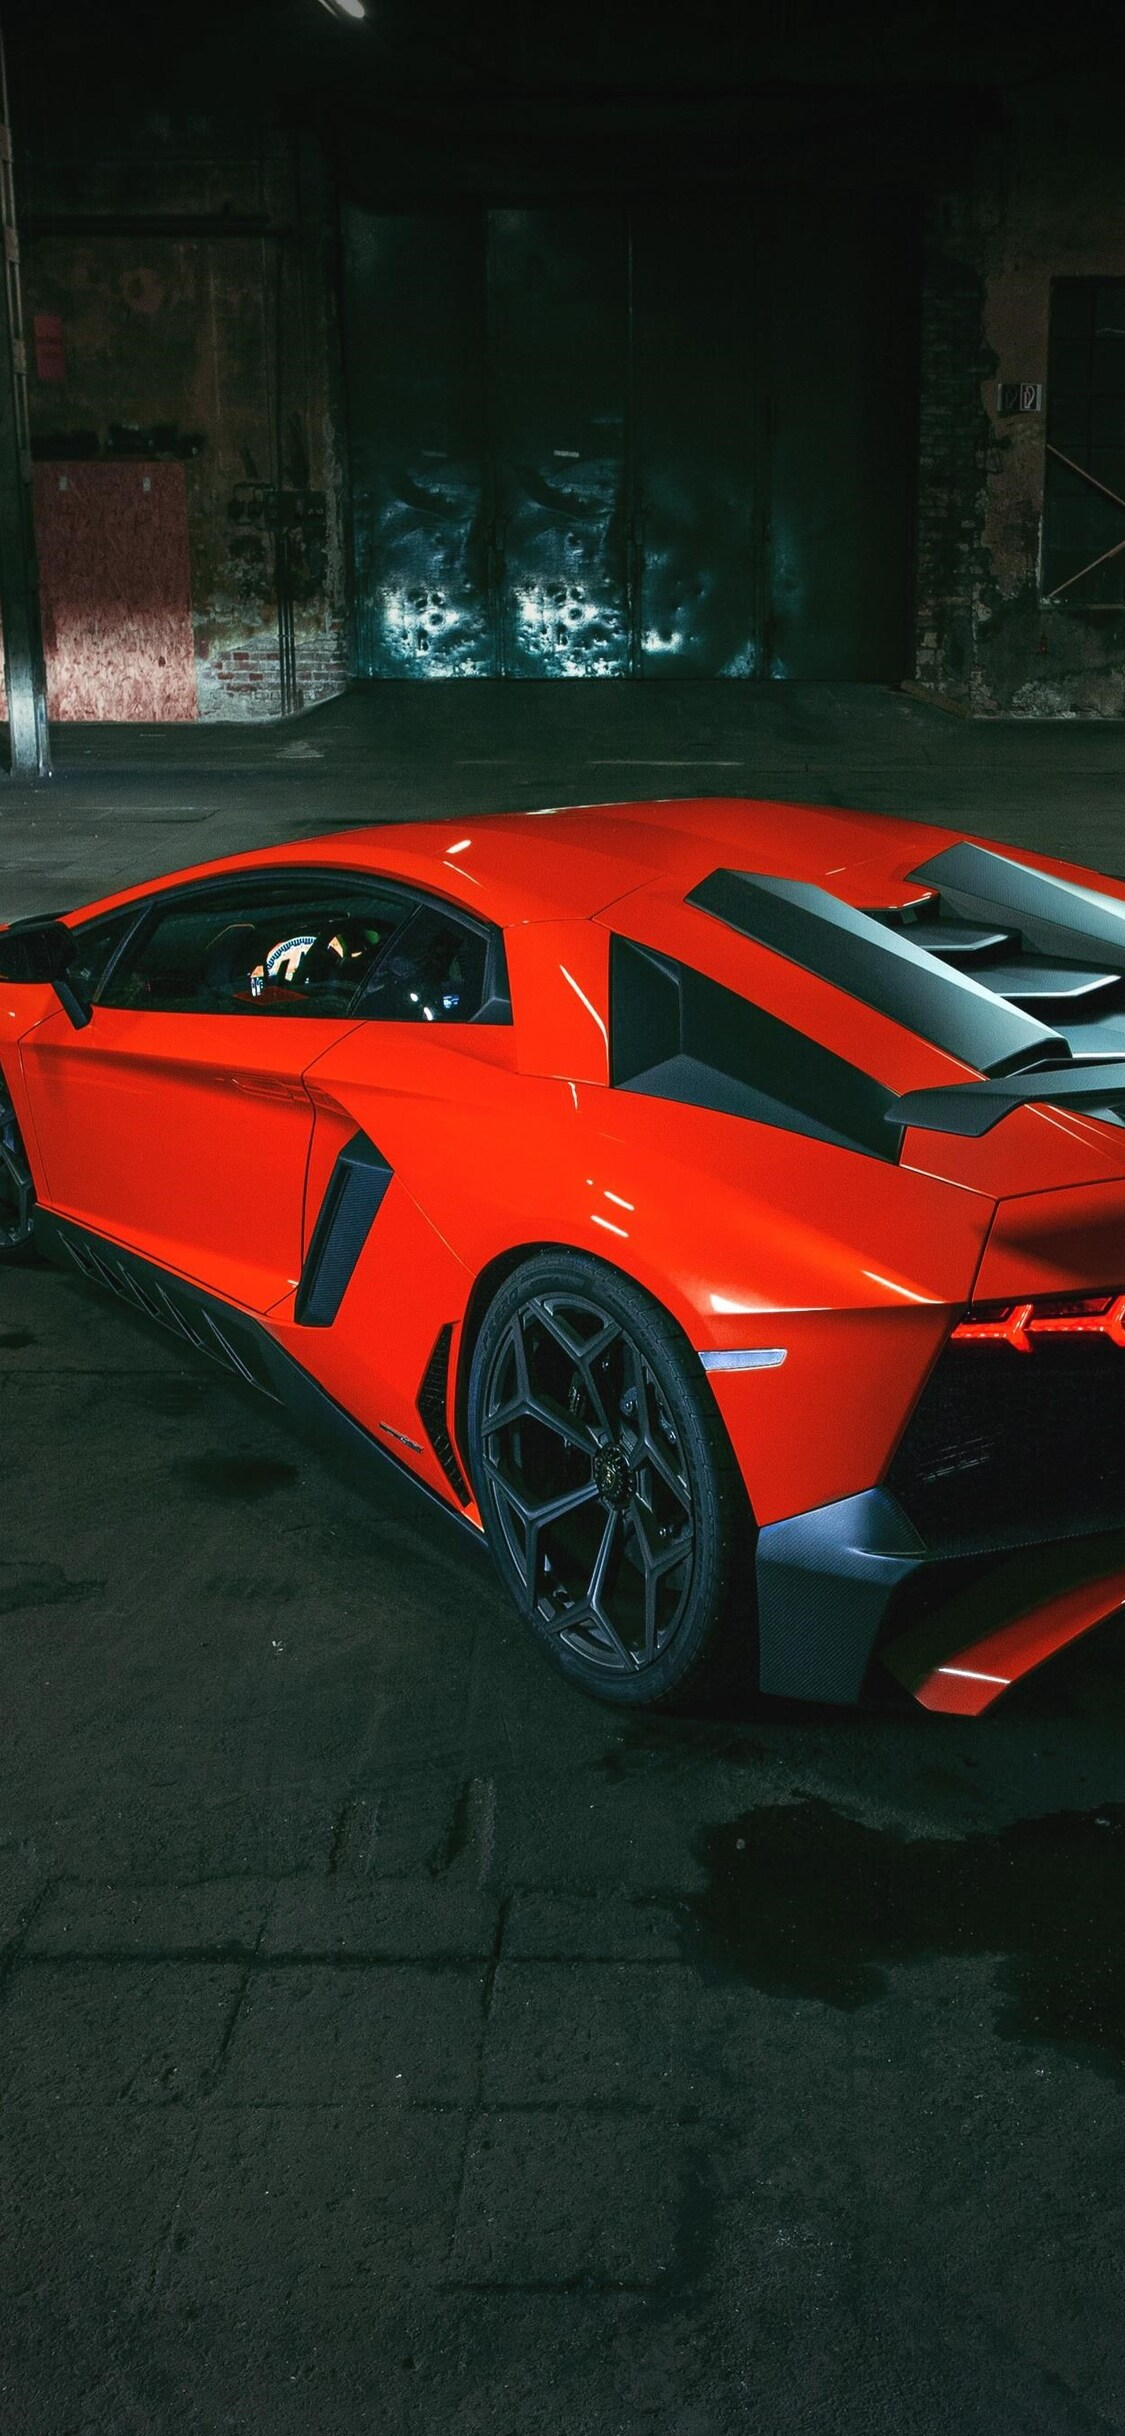 1125x2436 Lamborghini Aventador Tail Light Iphone Xs Iphone 10